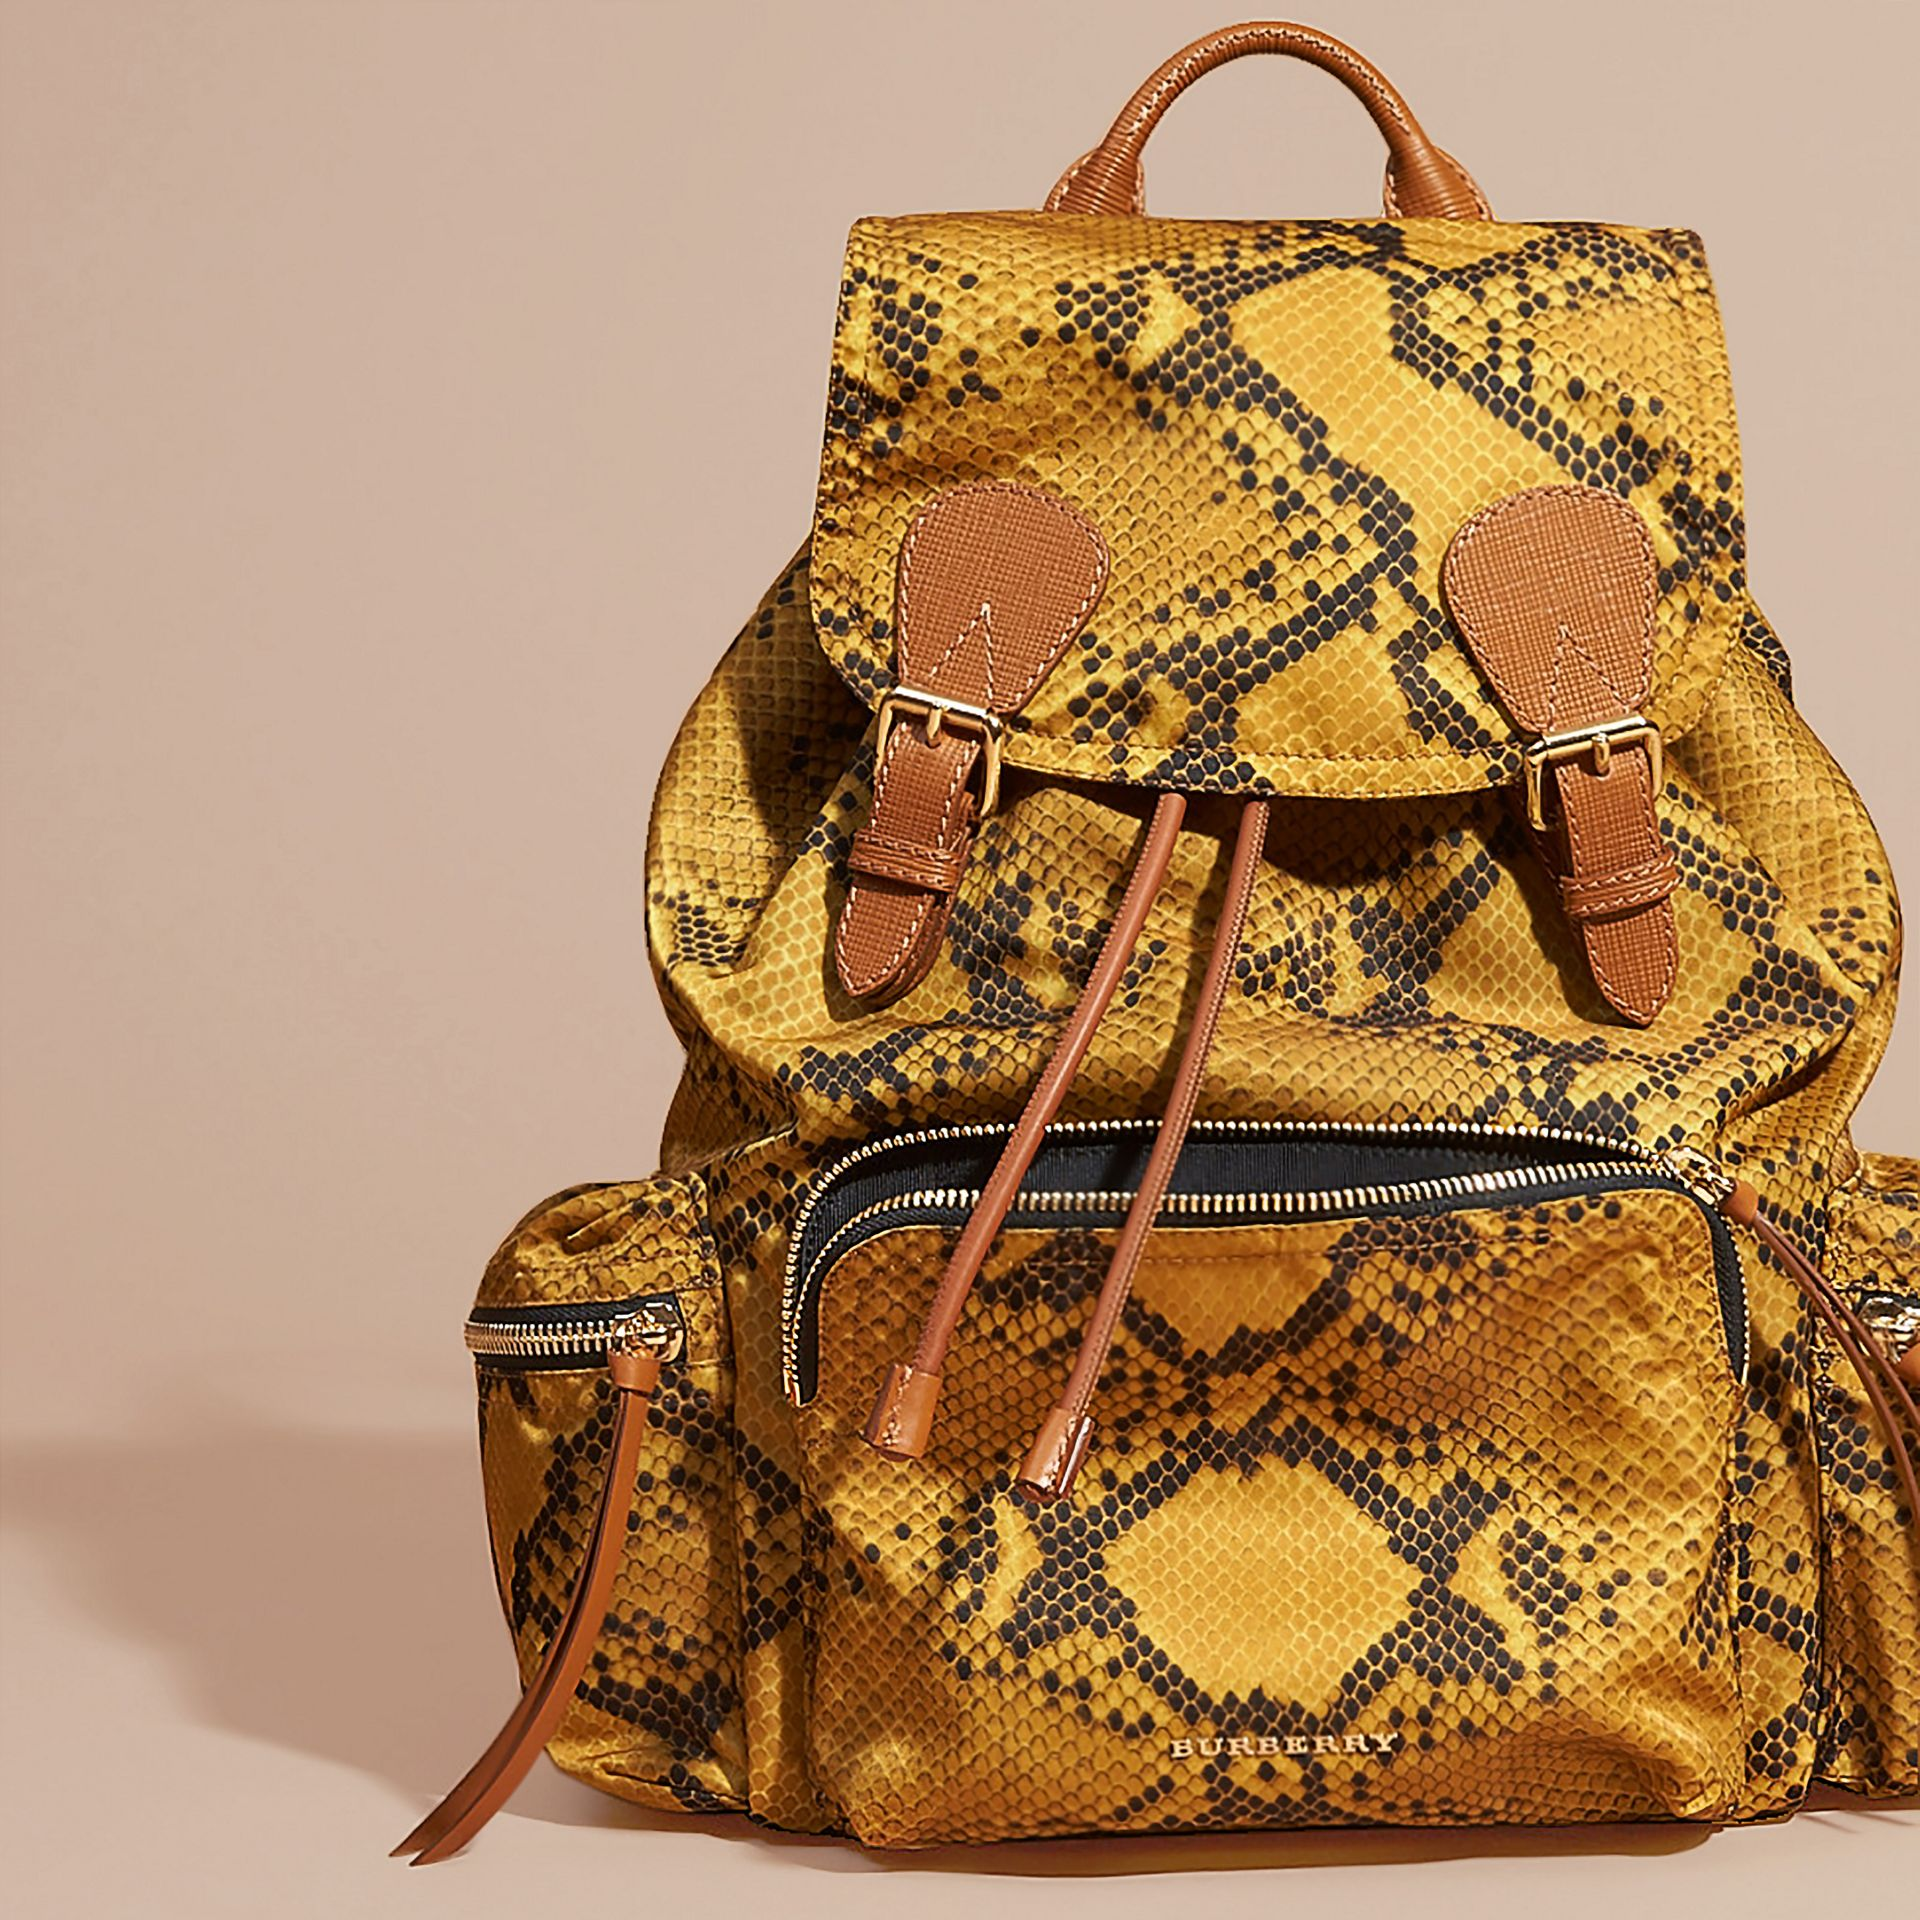 Yellow The Large Rucksack in Python Print Nylon and Leather Yellow - gallery image 6